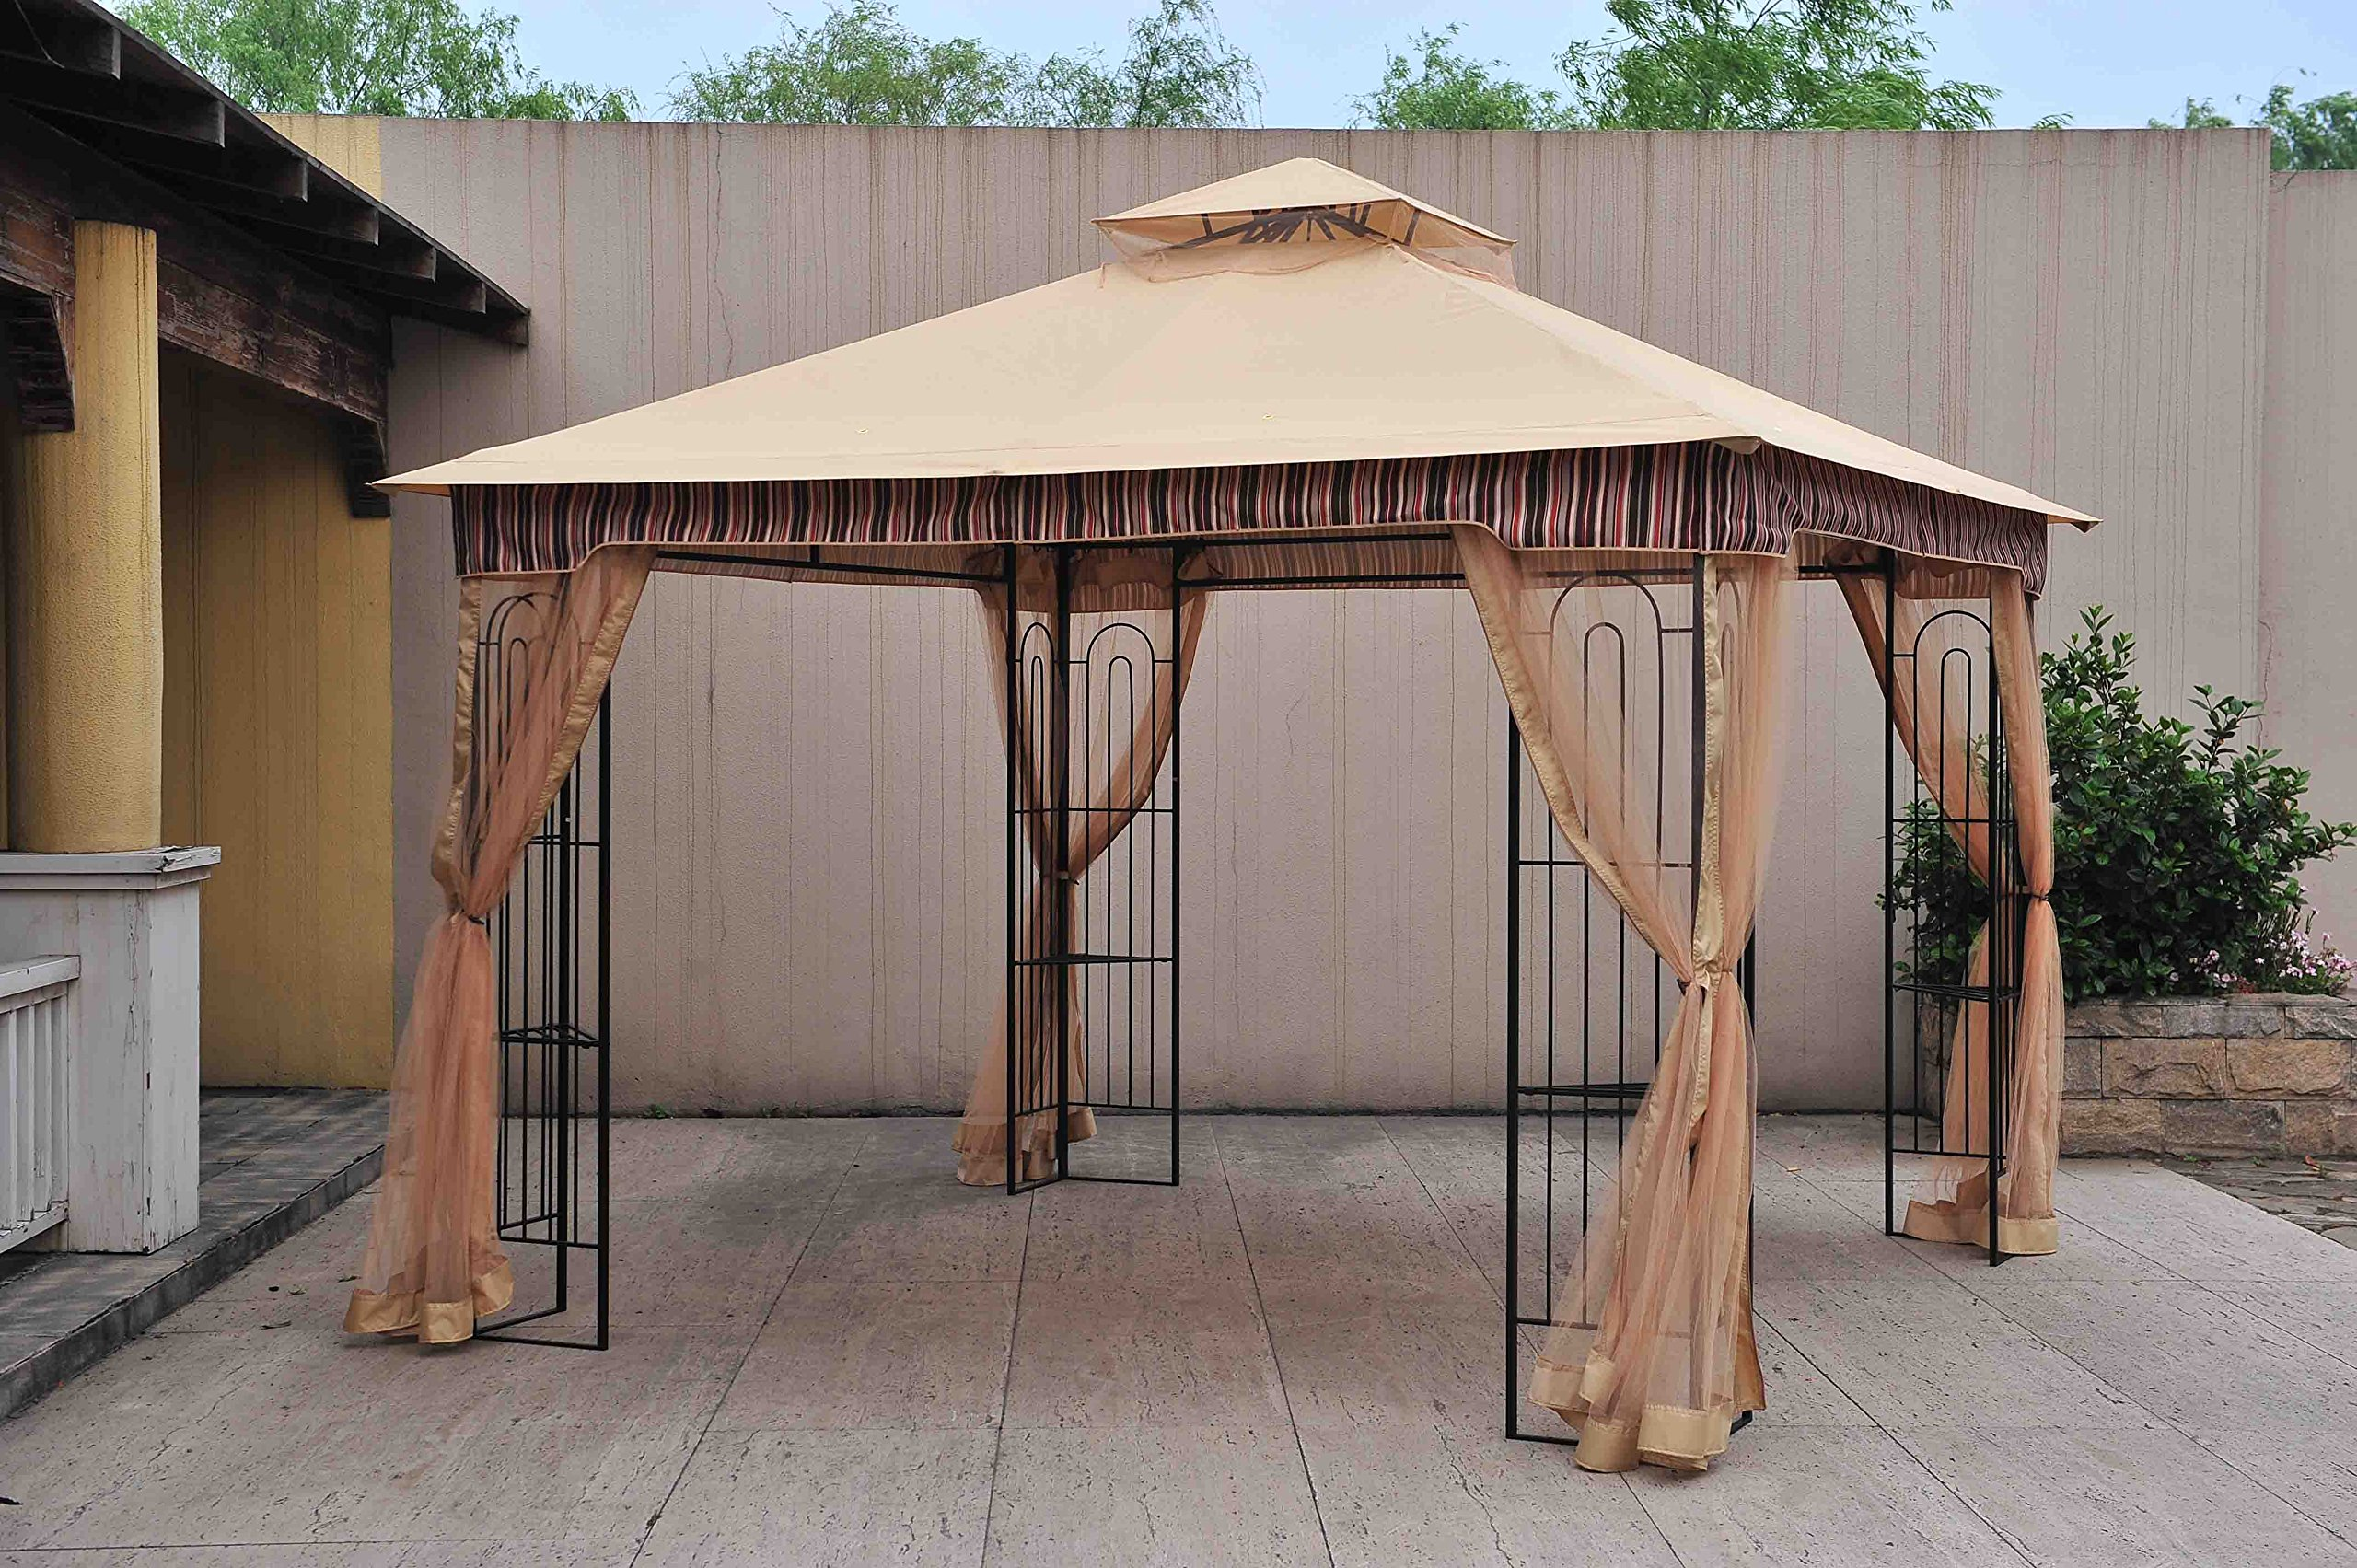 Sunjoy 10'x 10' Lansing Soft Top Gazebo with Netting